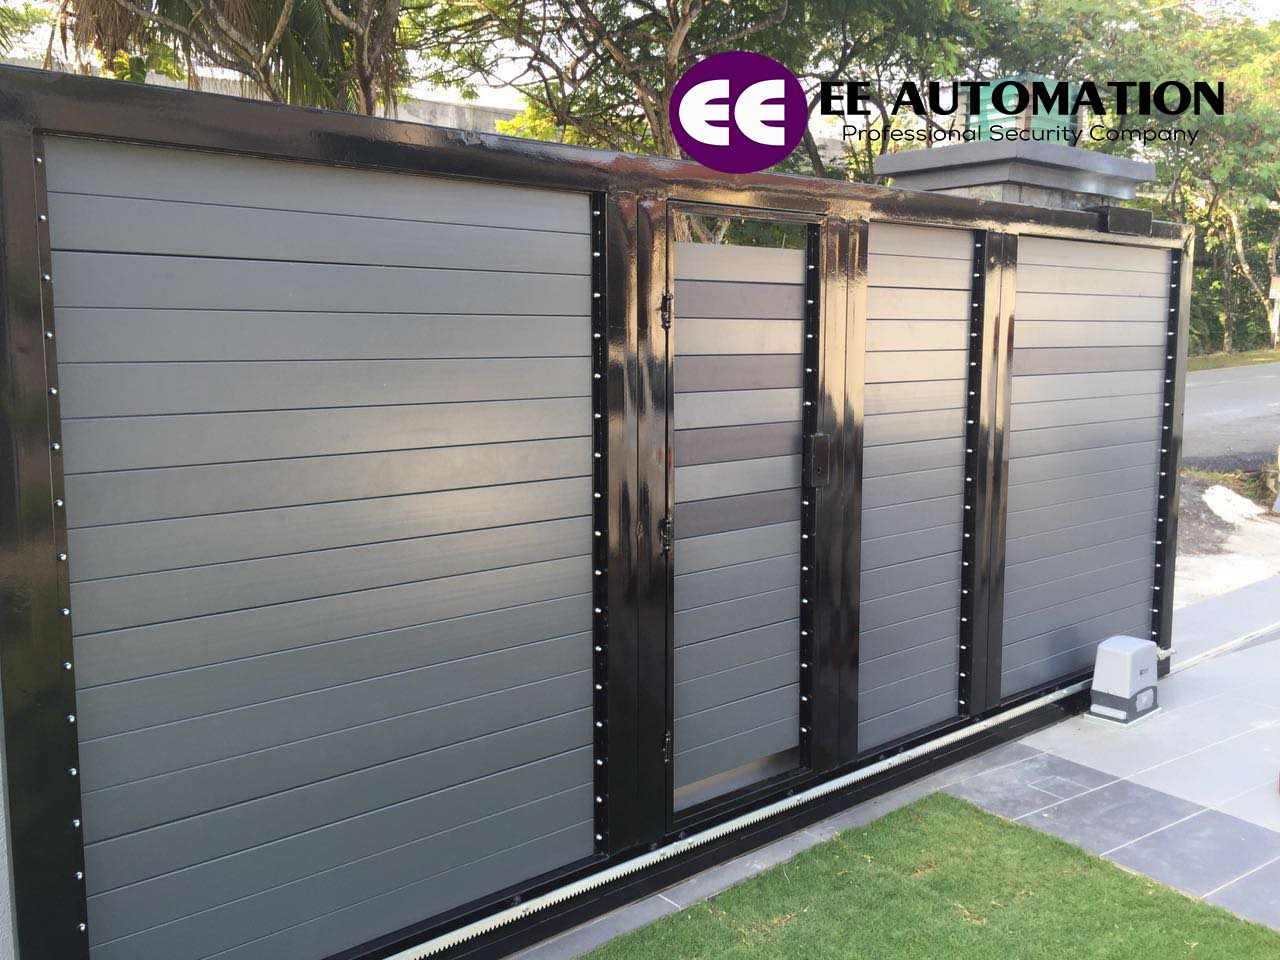 Top autogate supplier in puchong kl malaysia eeautomation